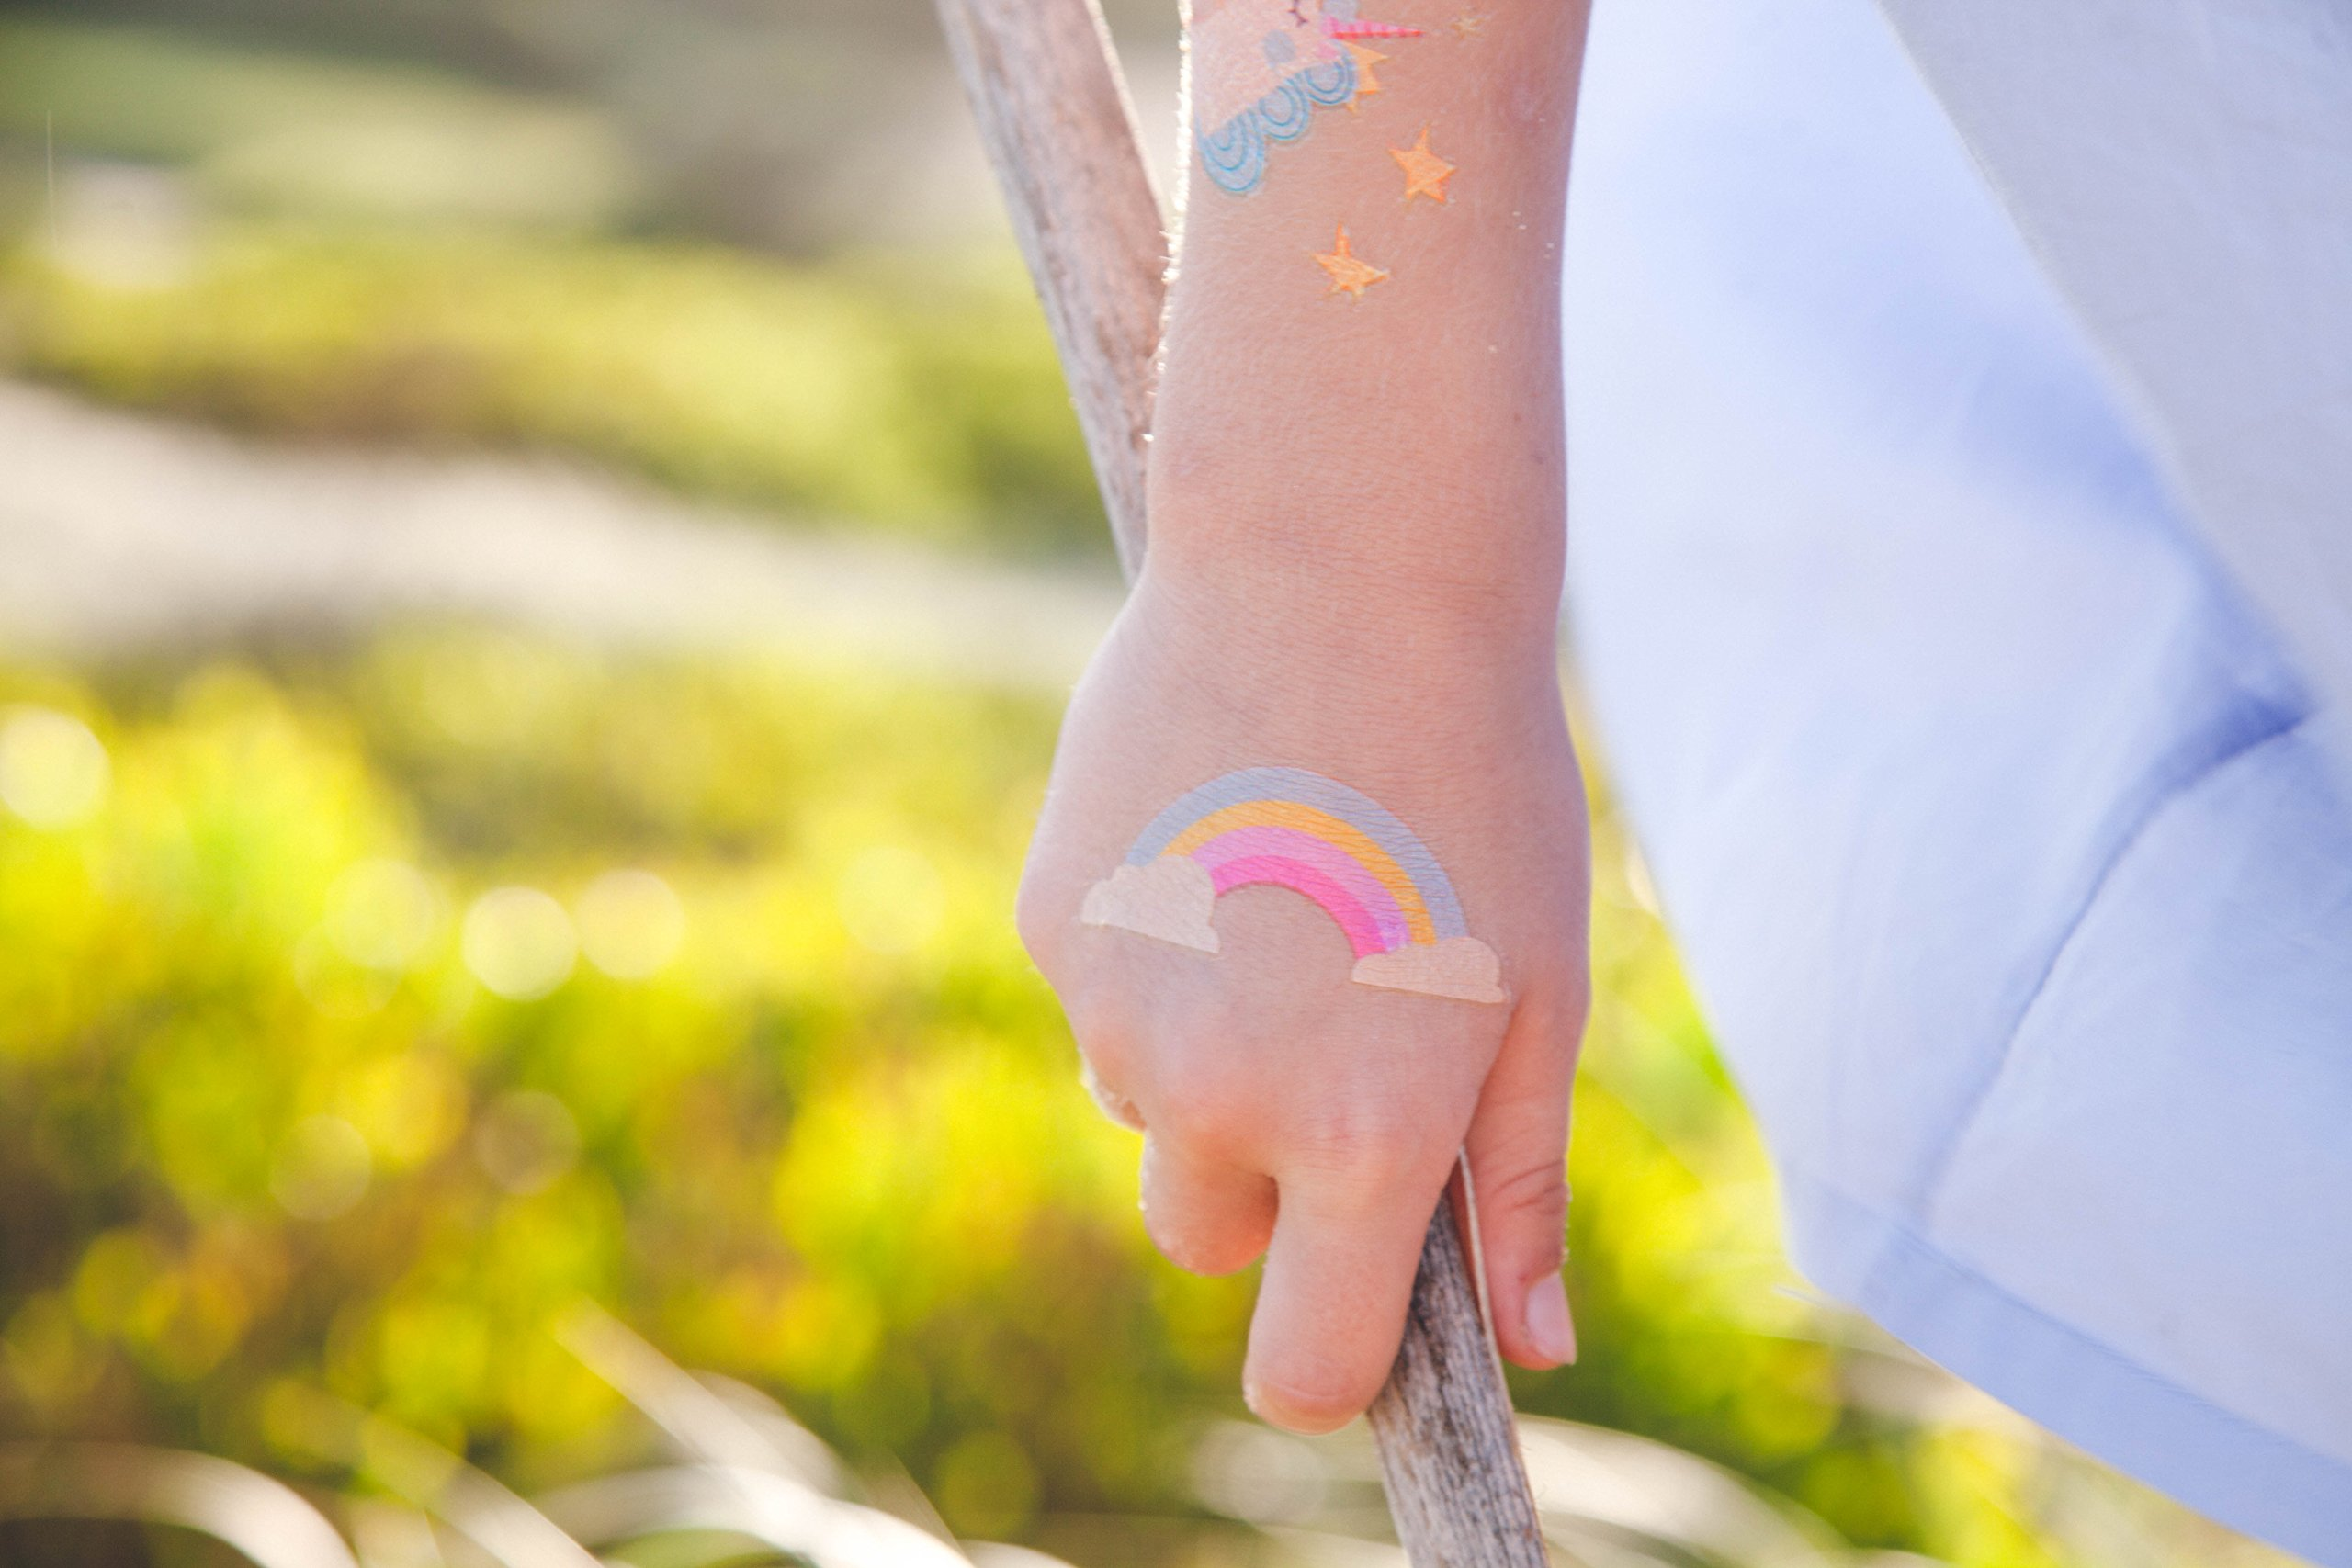 Unicorn Temporary Tattoos for Kids - Unicorn Party Favors, Birthday Decorations and Supplies - Non-toxic and Waterproof… 7